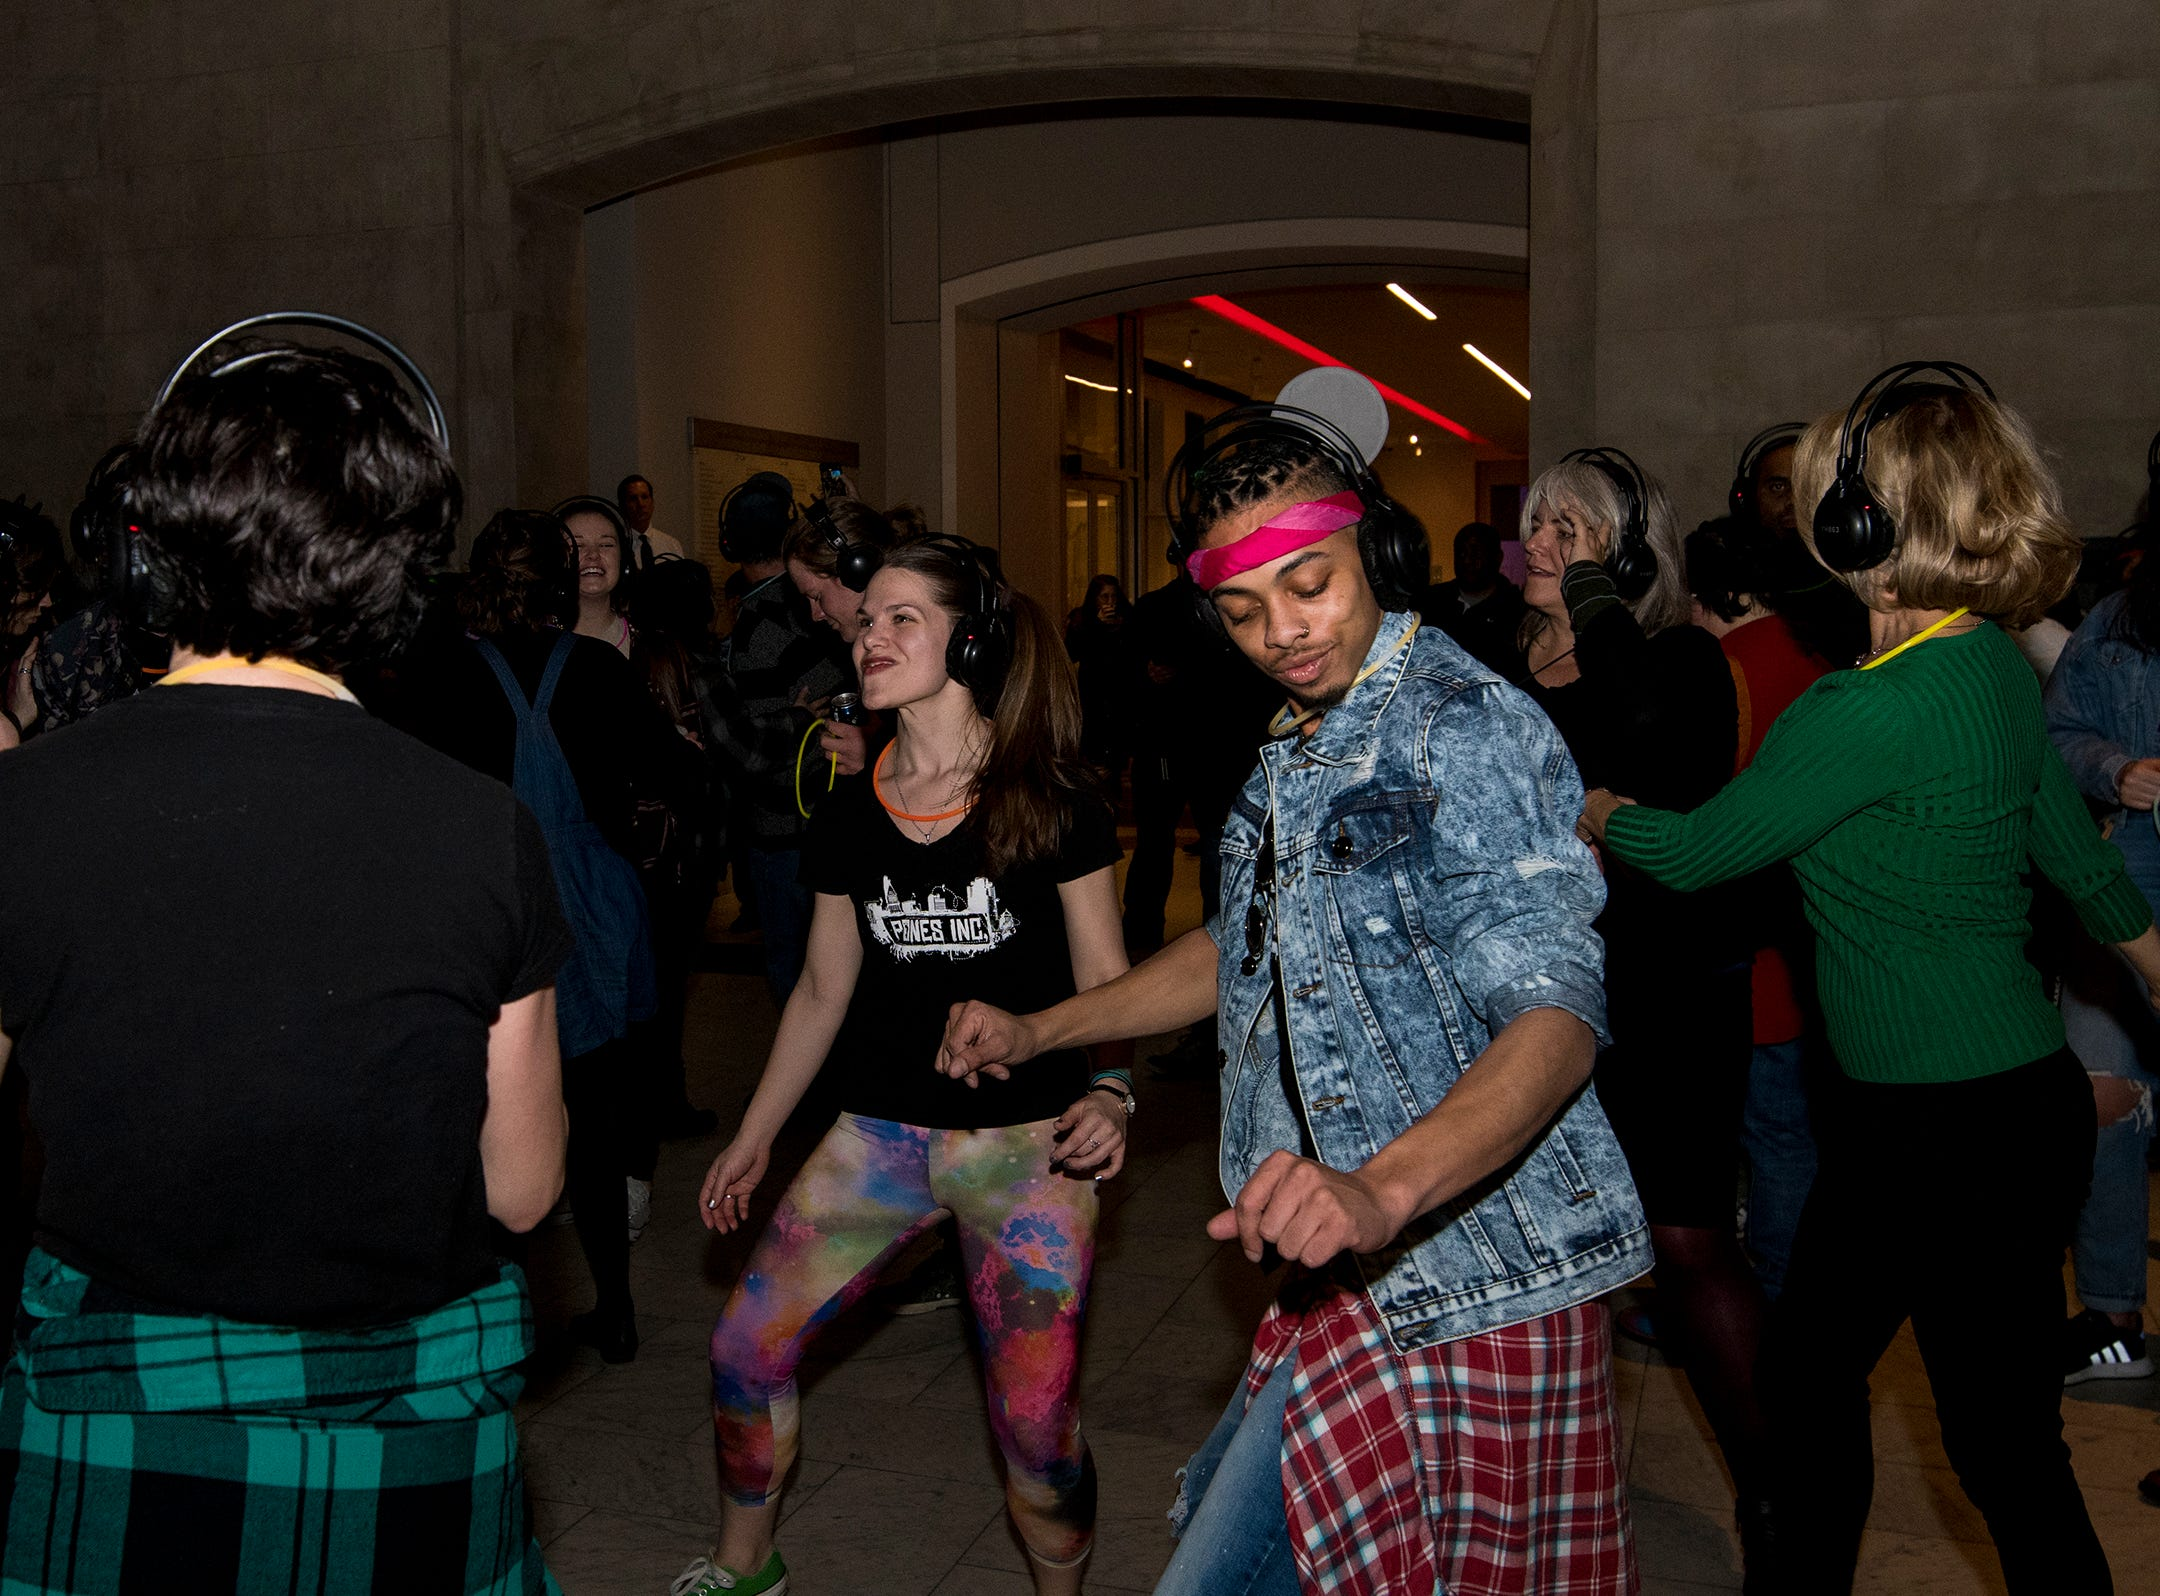 Dancers from Pones Inc. take the dance floor during a 90s-themed silent disco at Art After Dark at the Cincinnati Art Museum Friday, January 25, 2019 in Cincinnati, Ohio.